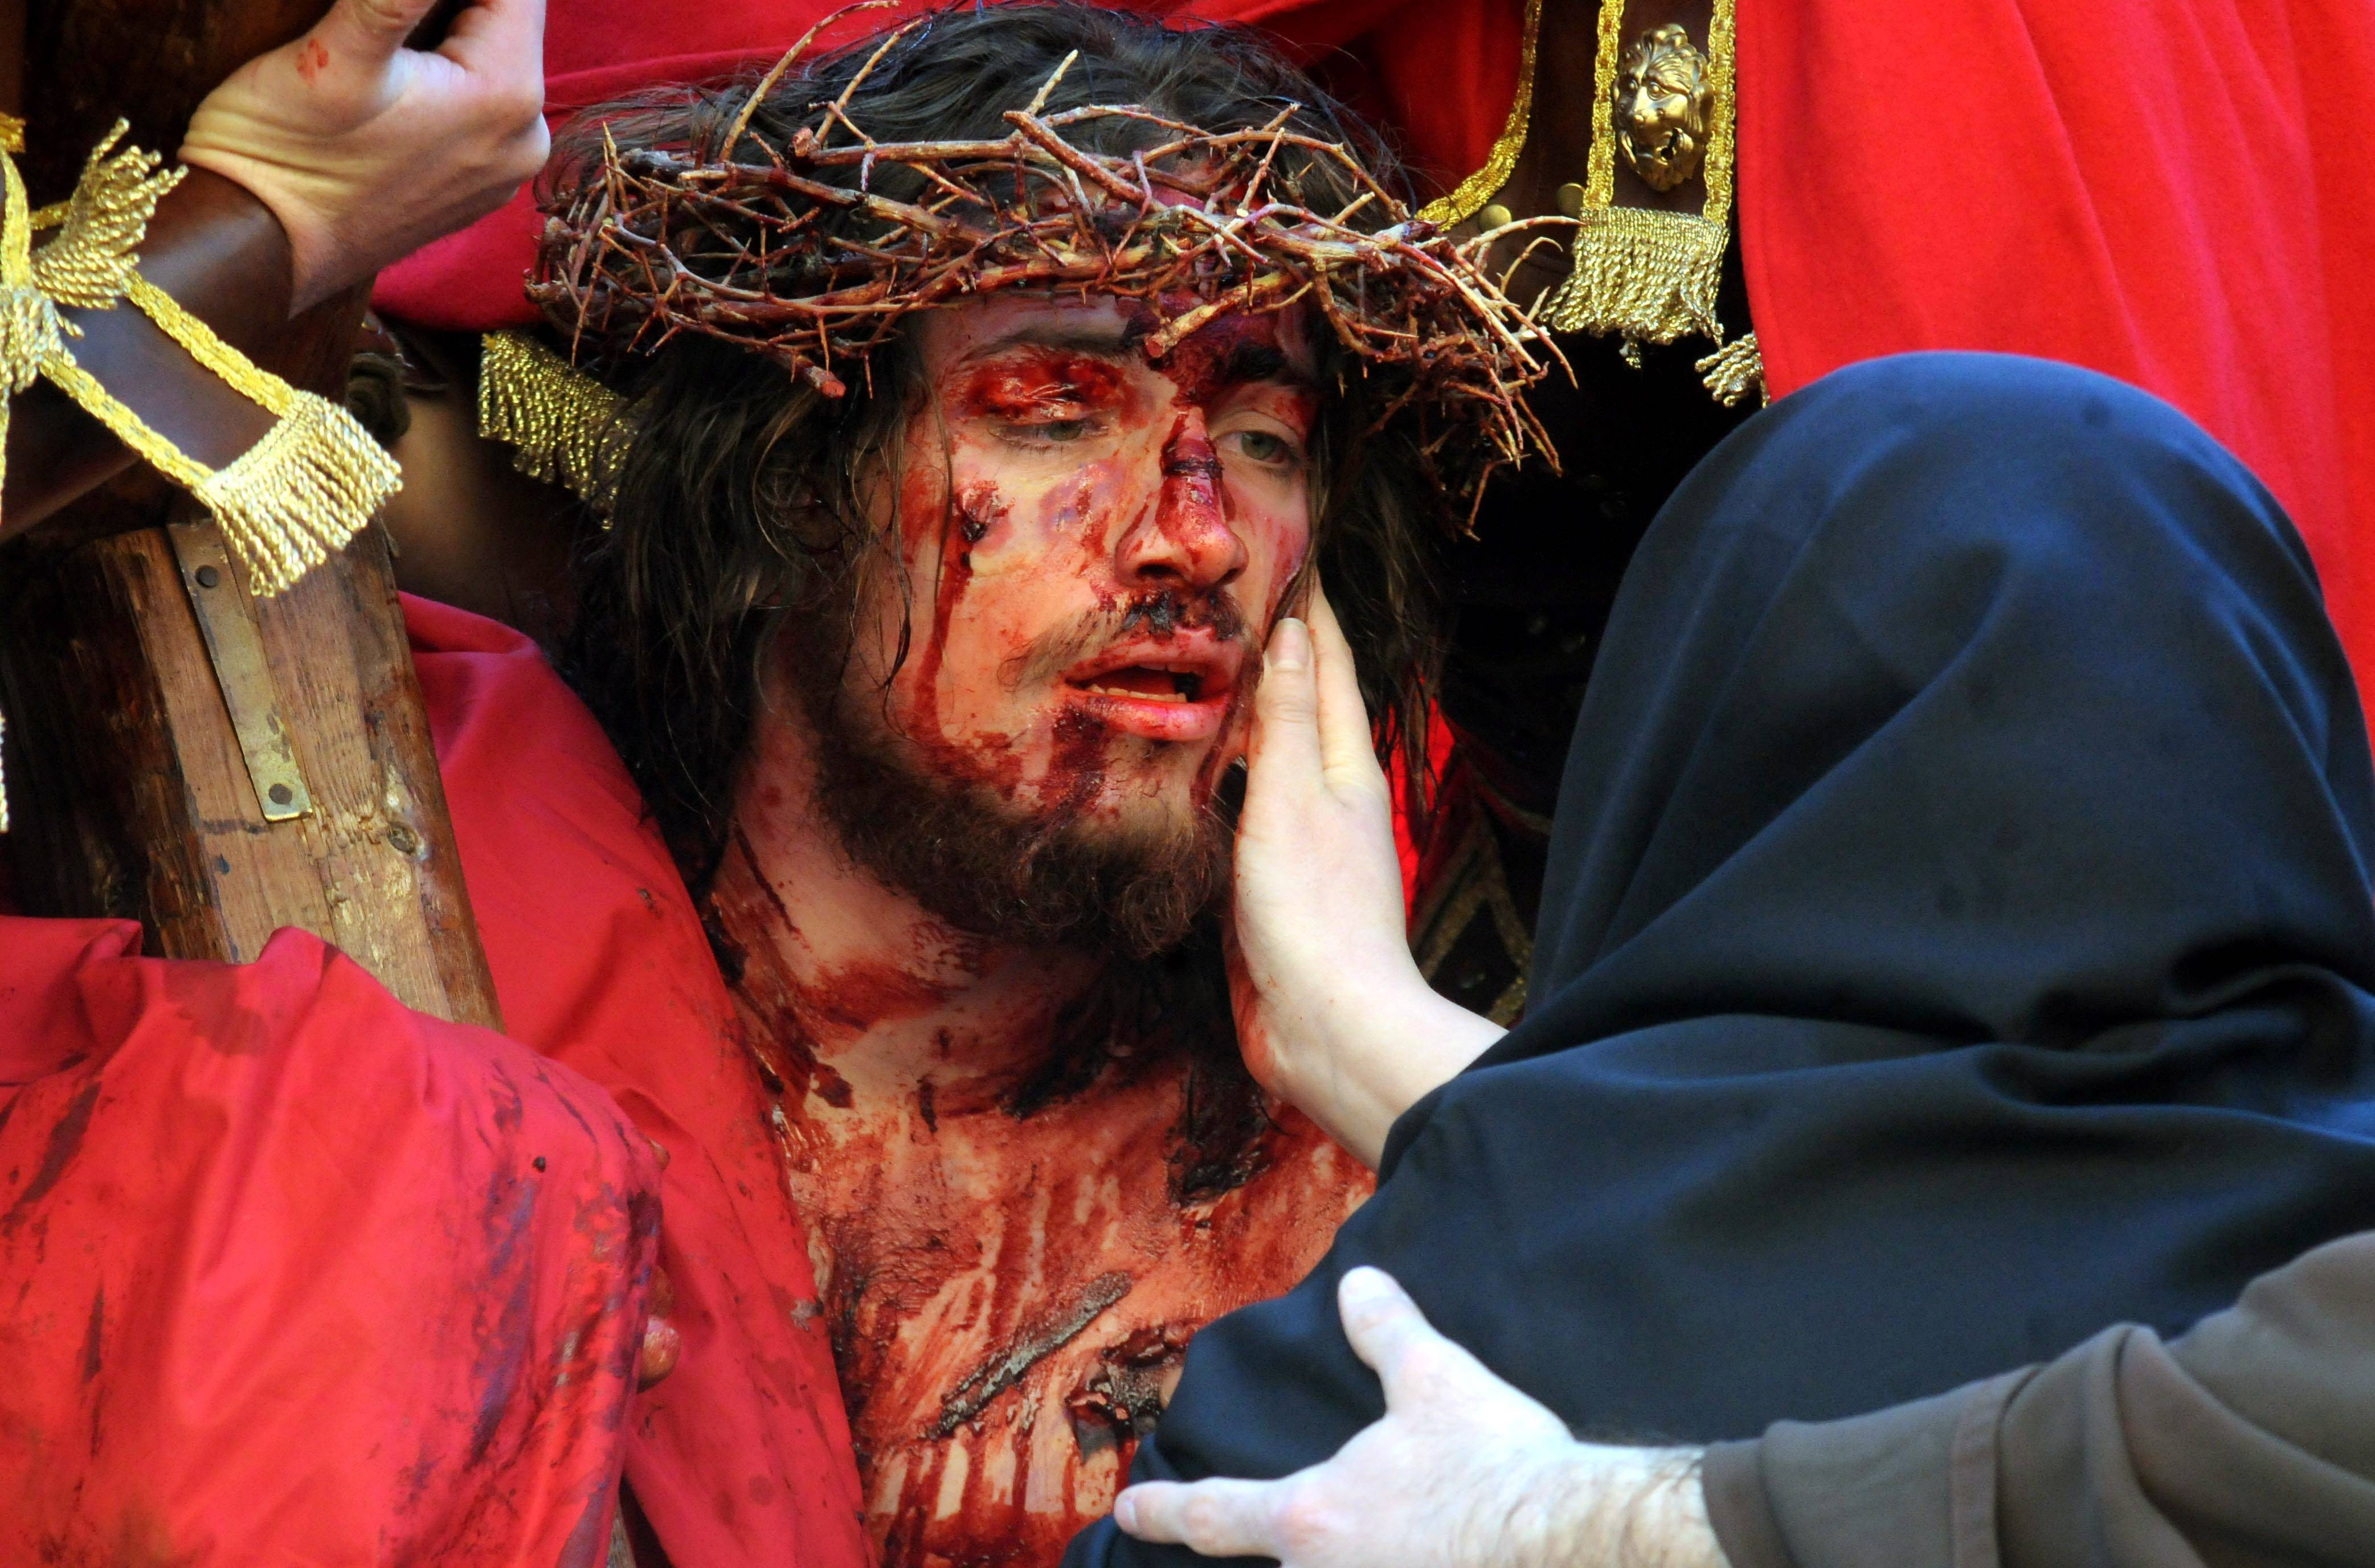 Portraying Jesus Christ a man takes part in a Way of the Cross procession, at the Saint Isidoro Agricola church in Palermo, Sicily.